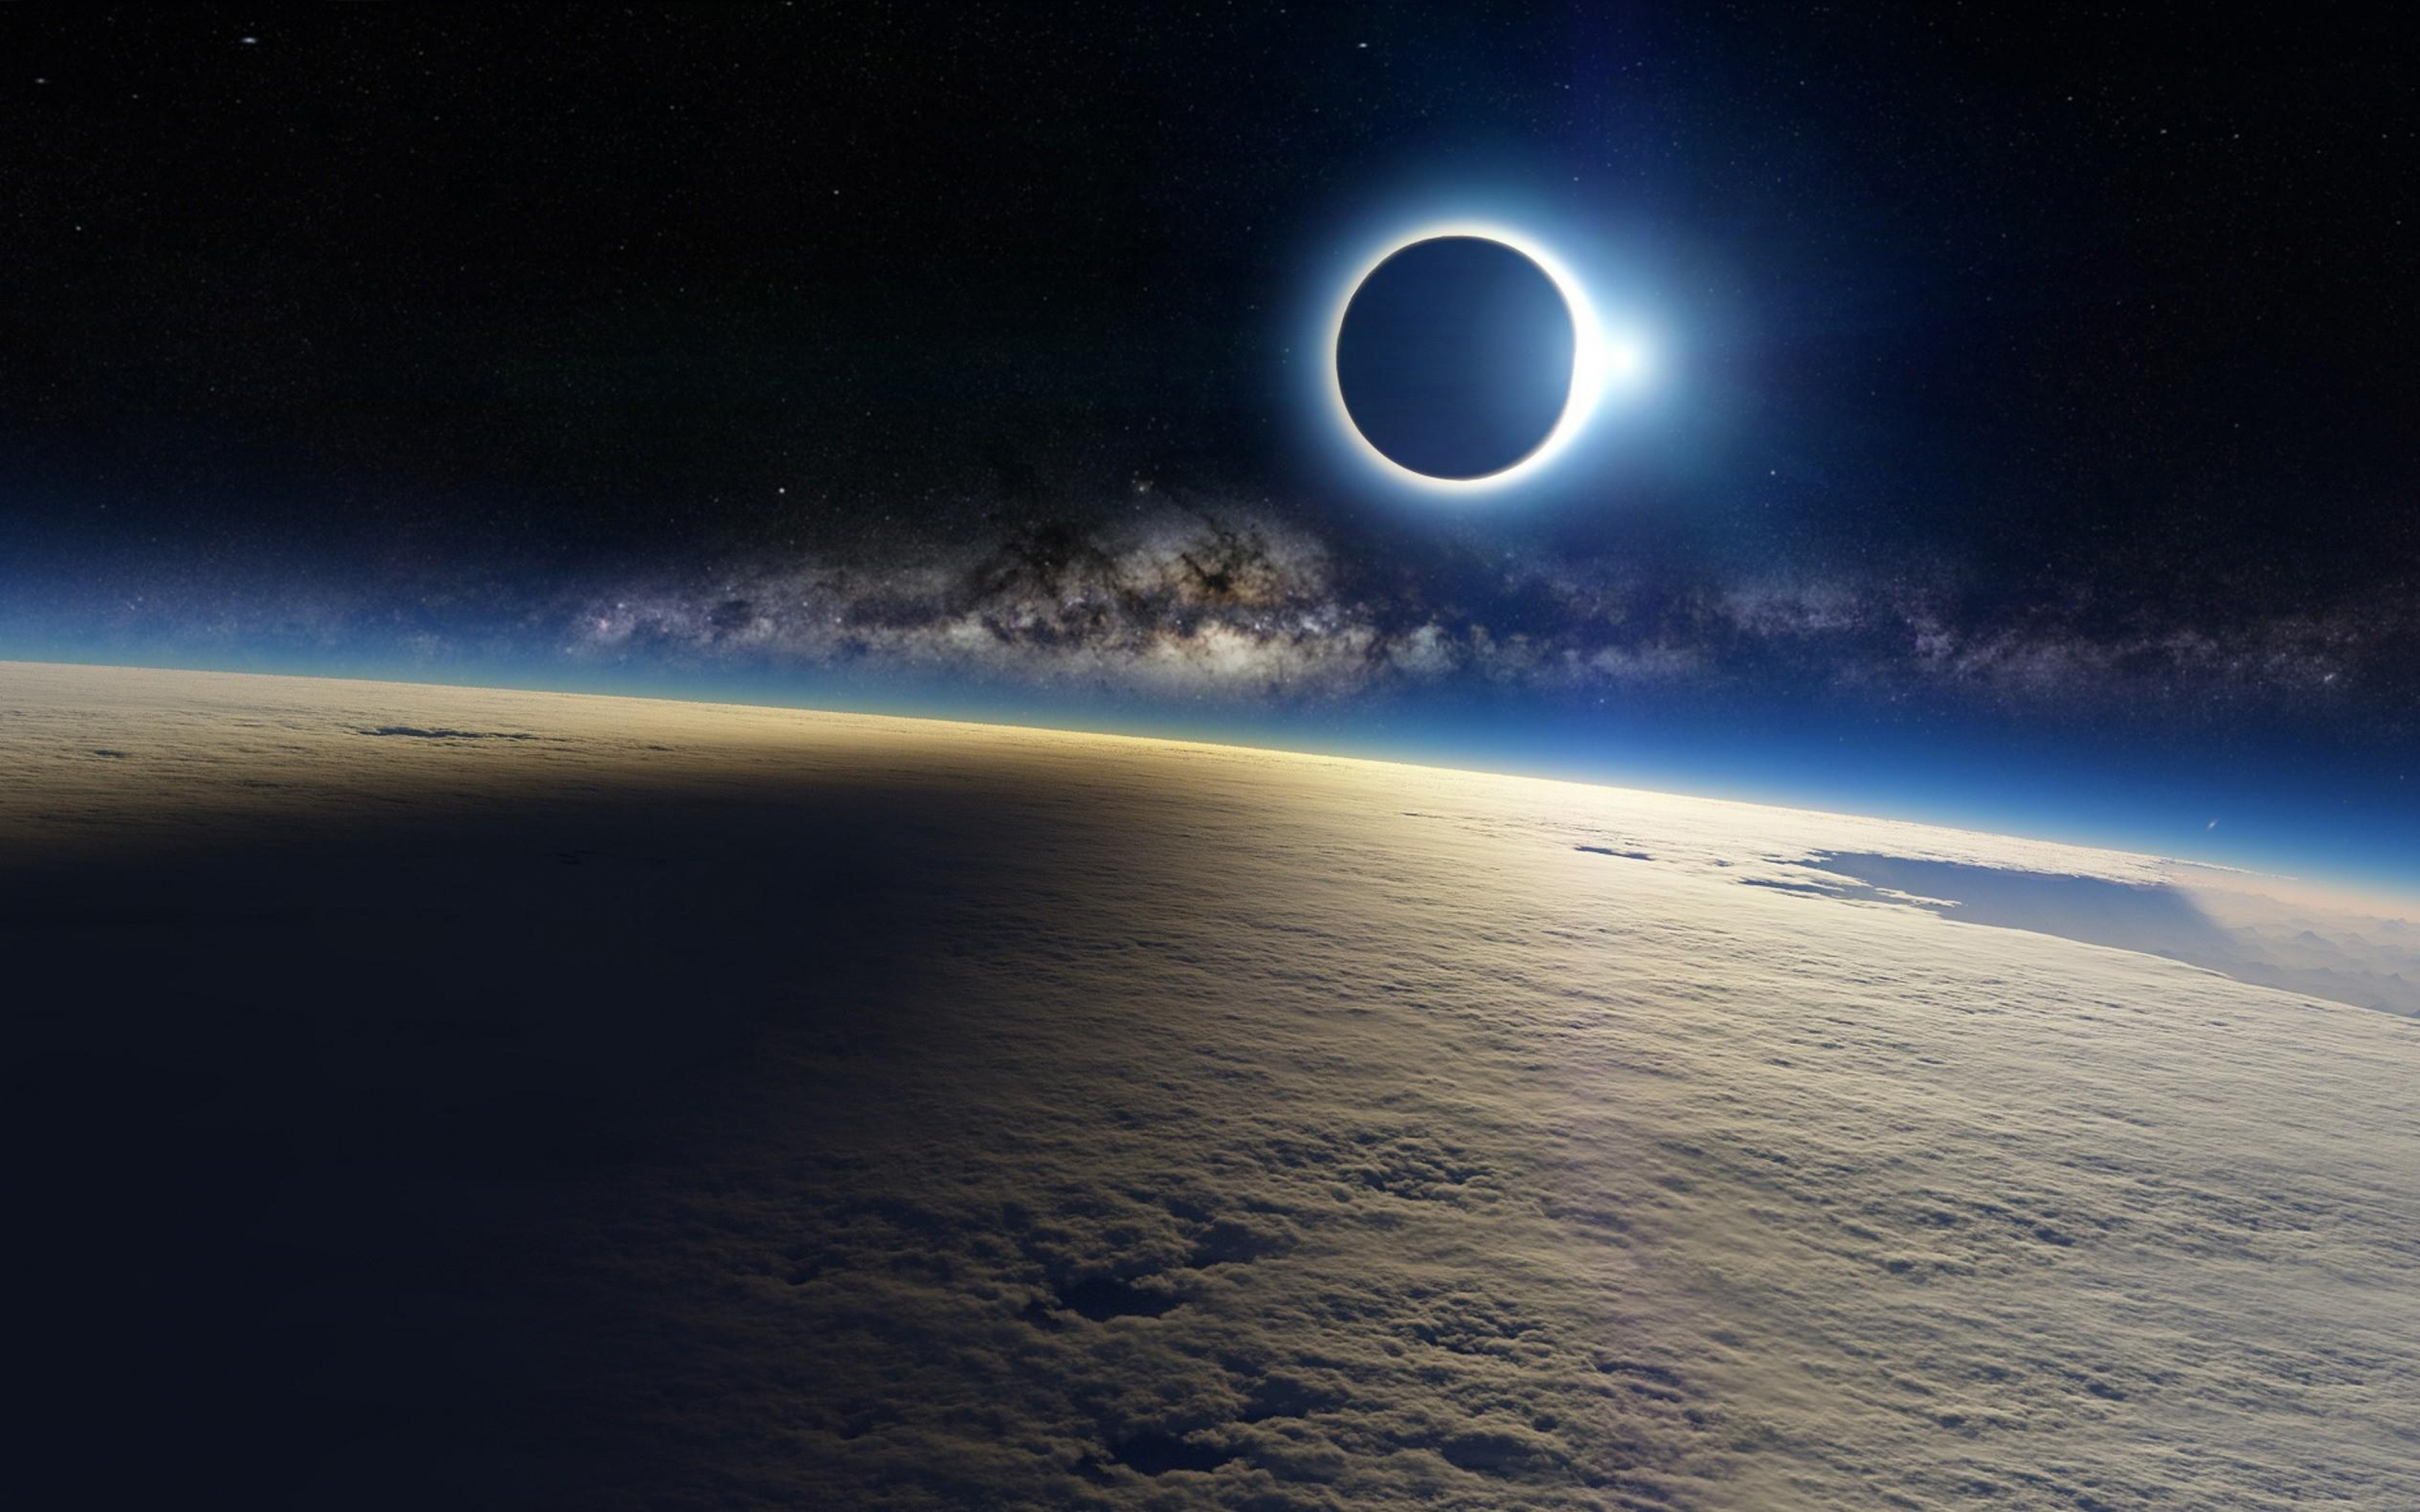 HD Solar Eclipse Moon Shadow On Earth Cloud Wallpaper WallpapersByte 3840x2400